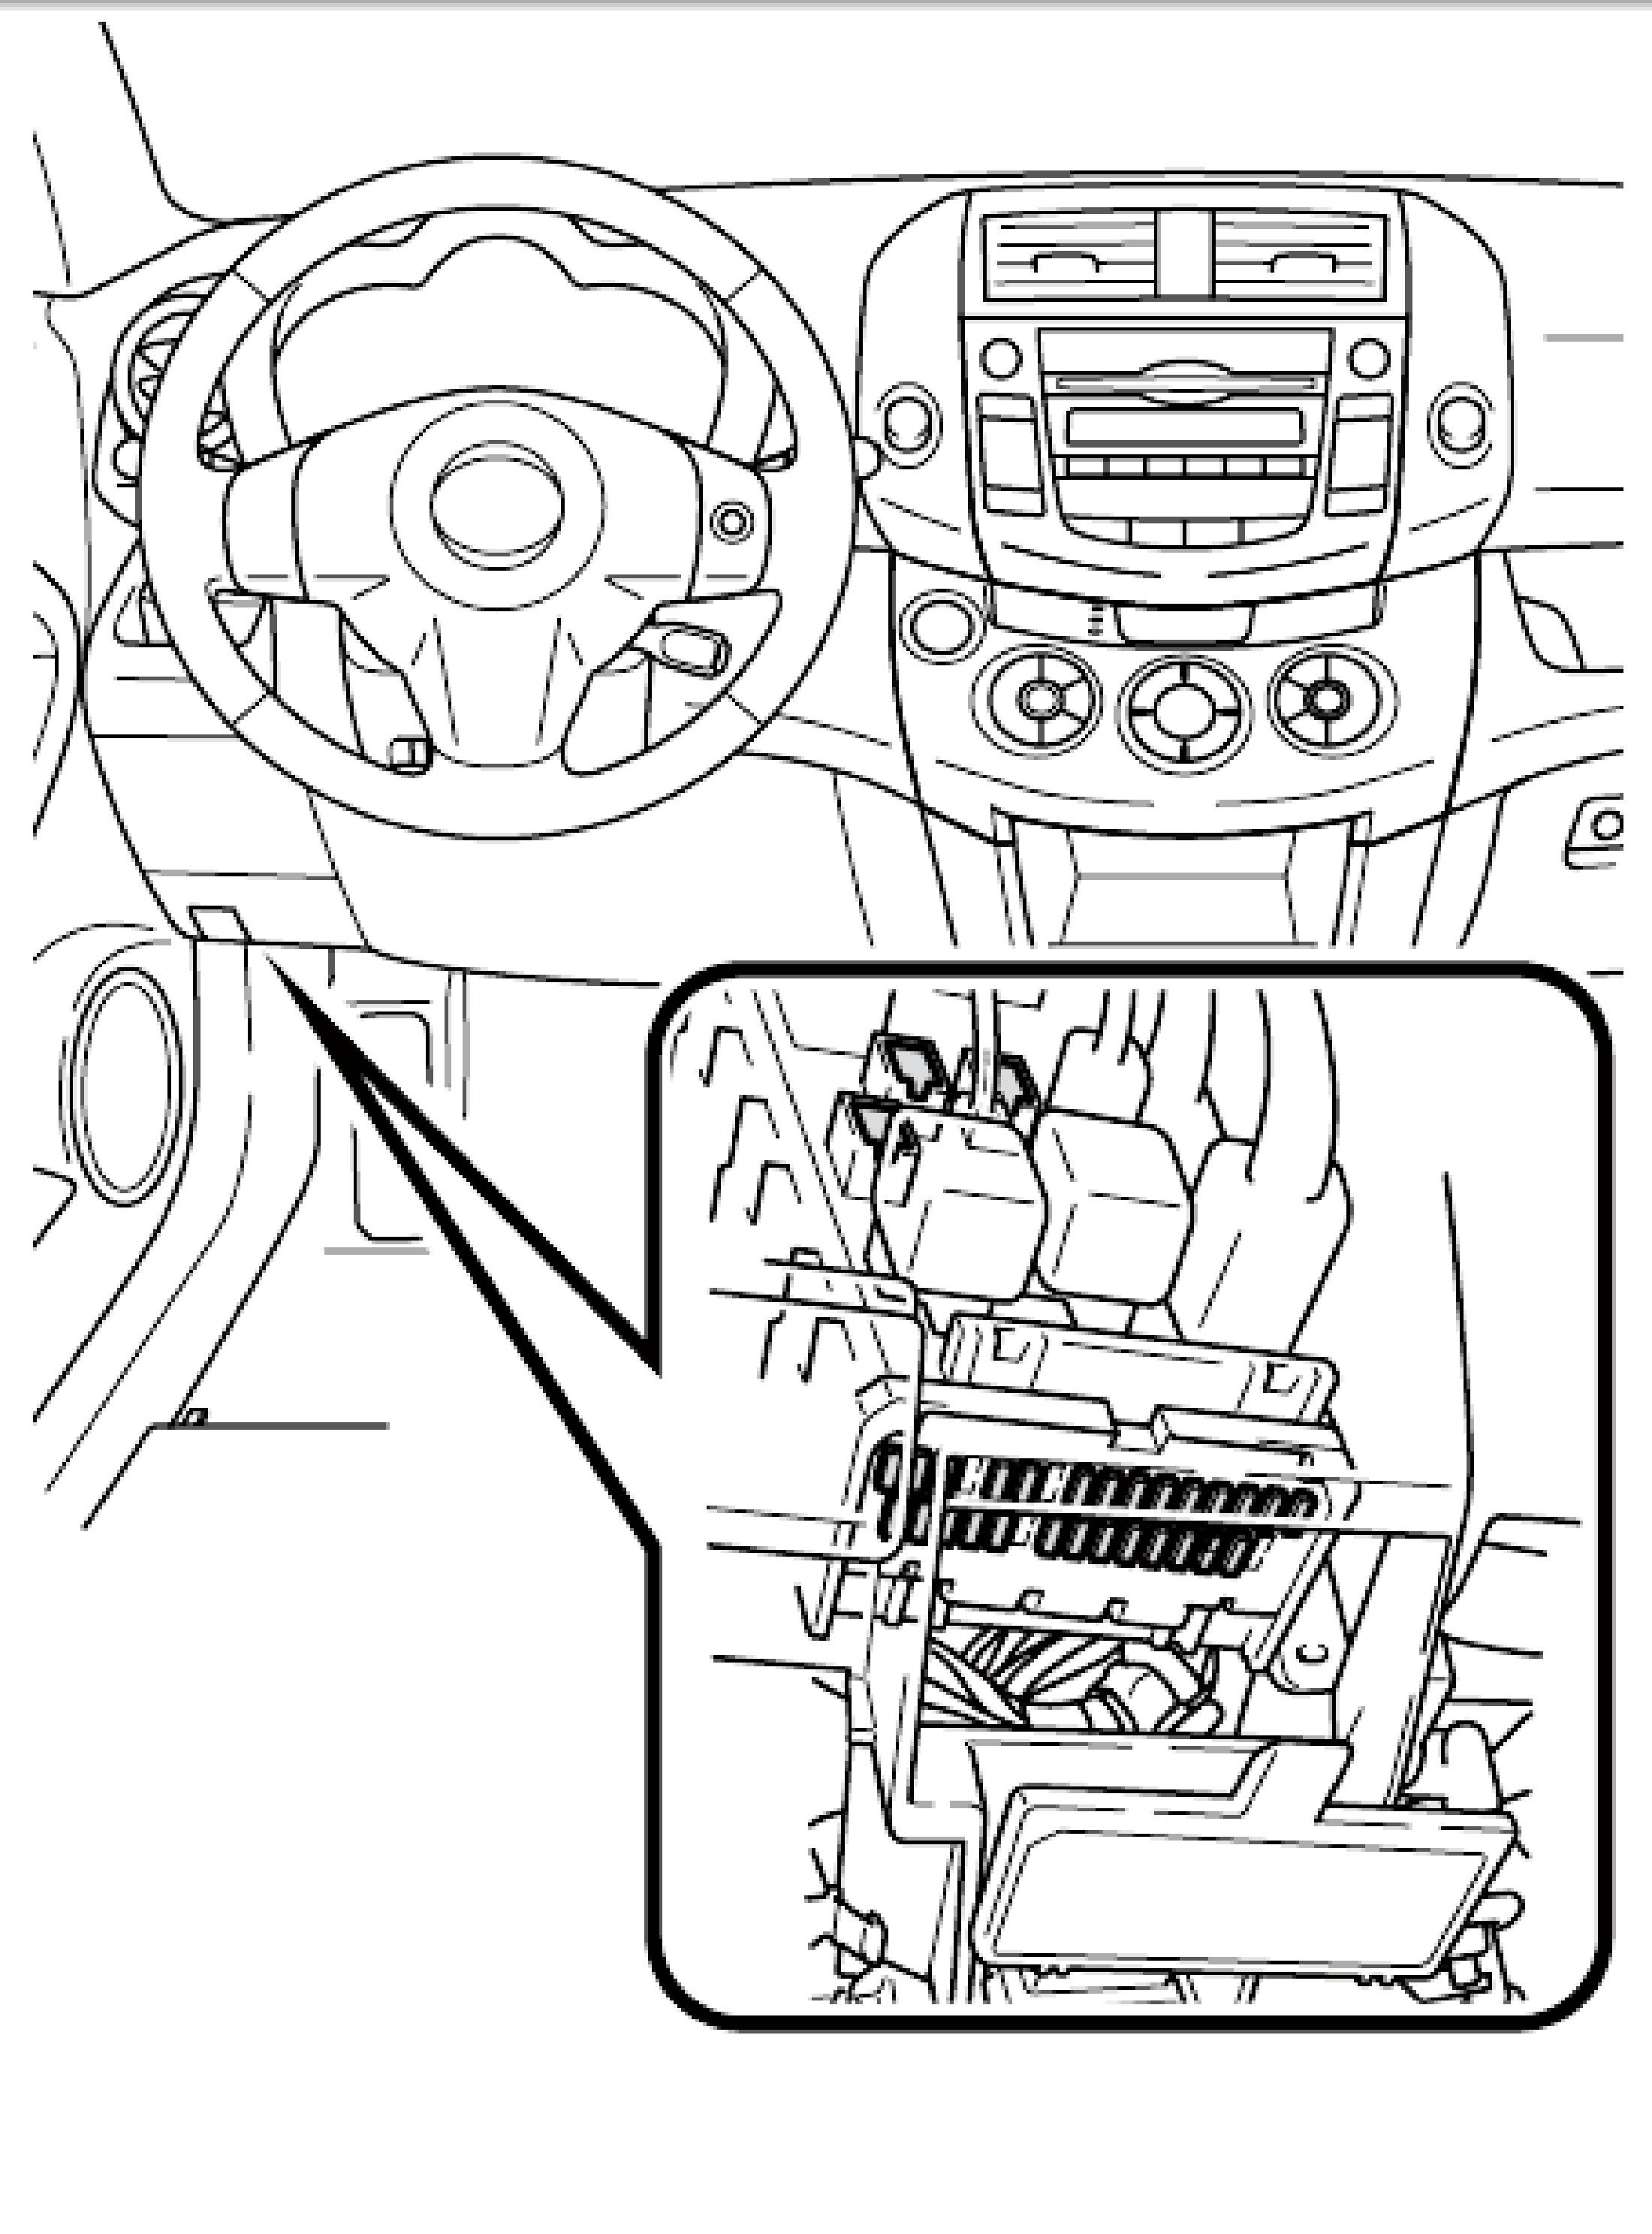 2002 toyota corolla fuse box   28 wiring diagram images